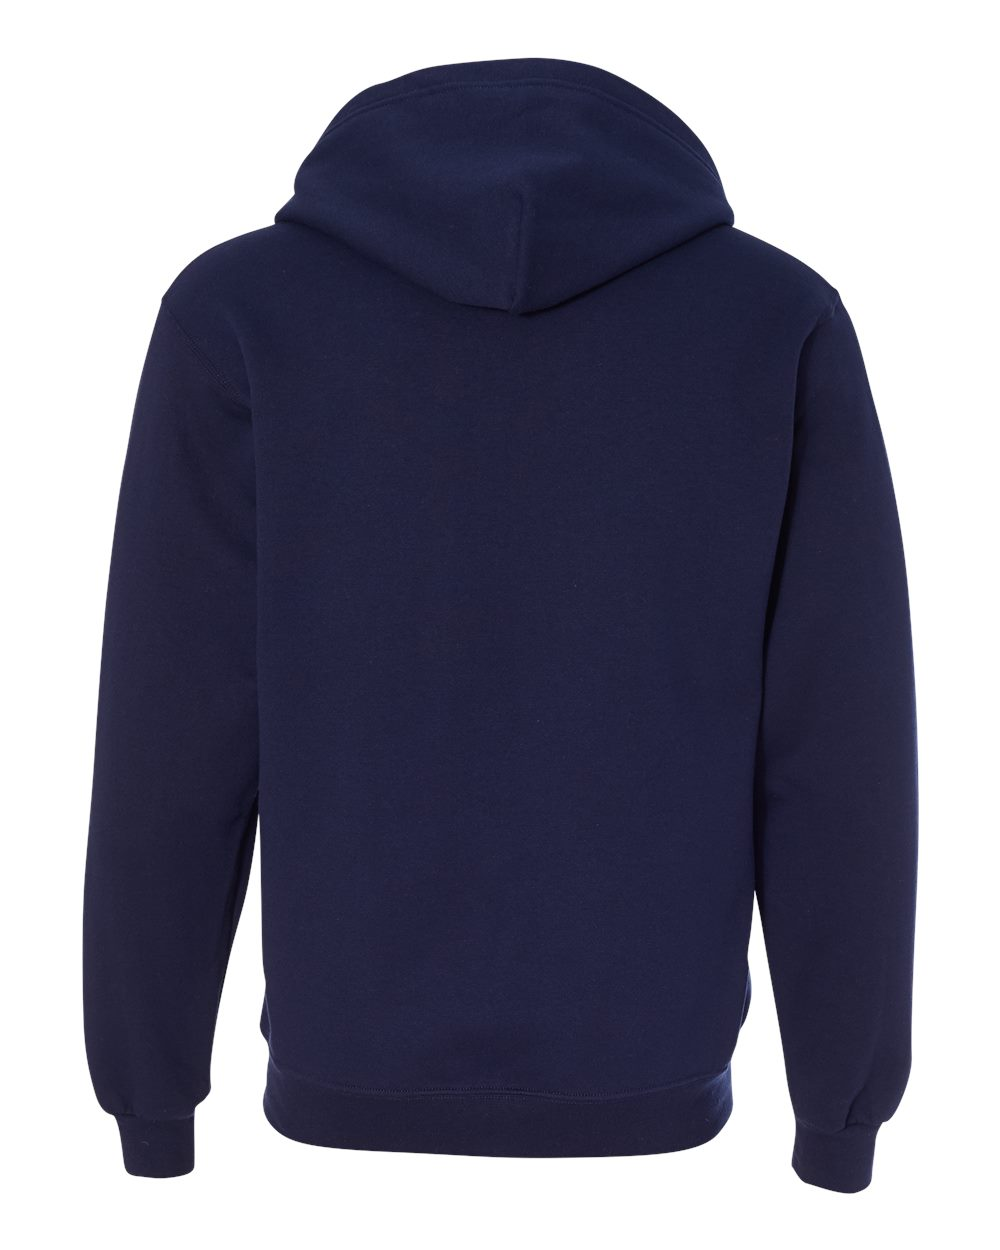 Fruit-of-the-Loom-Mens-Sofspun-Hooded-Full-Zip-Sweatshirt-Blank-SF73R-up-to-3XL thumbnail 19